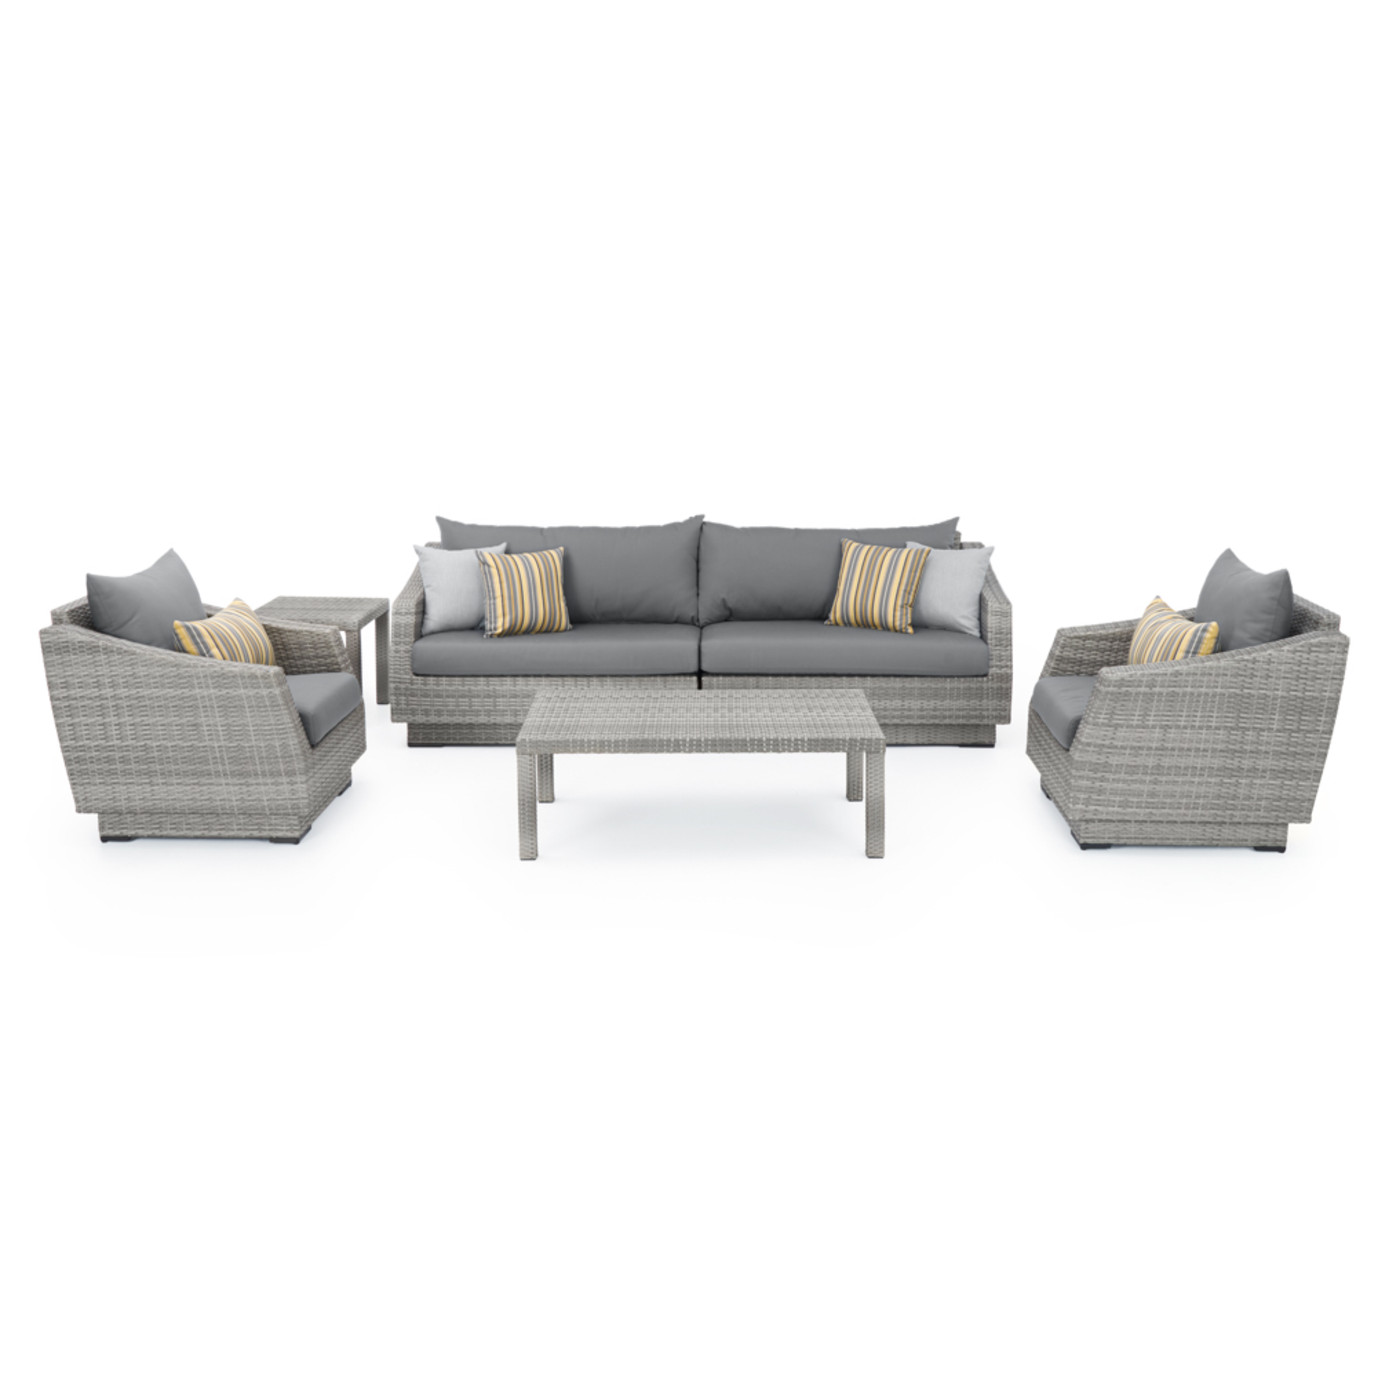 Cannes™ 6pc Sofa & Club Chair Set - Charcoal Grey